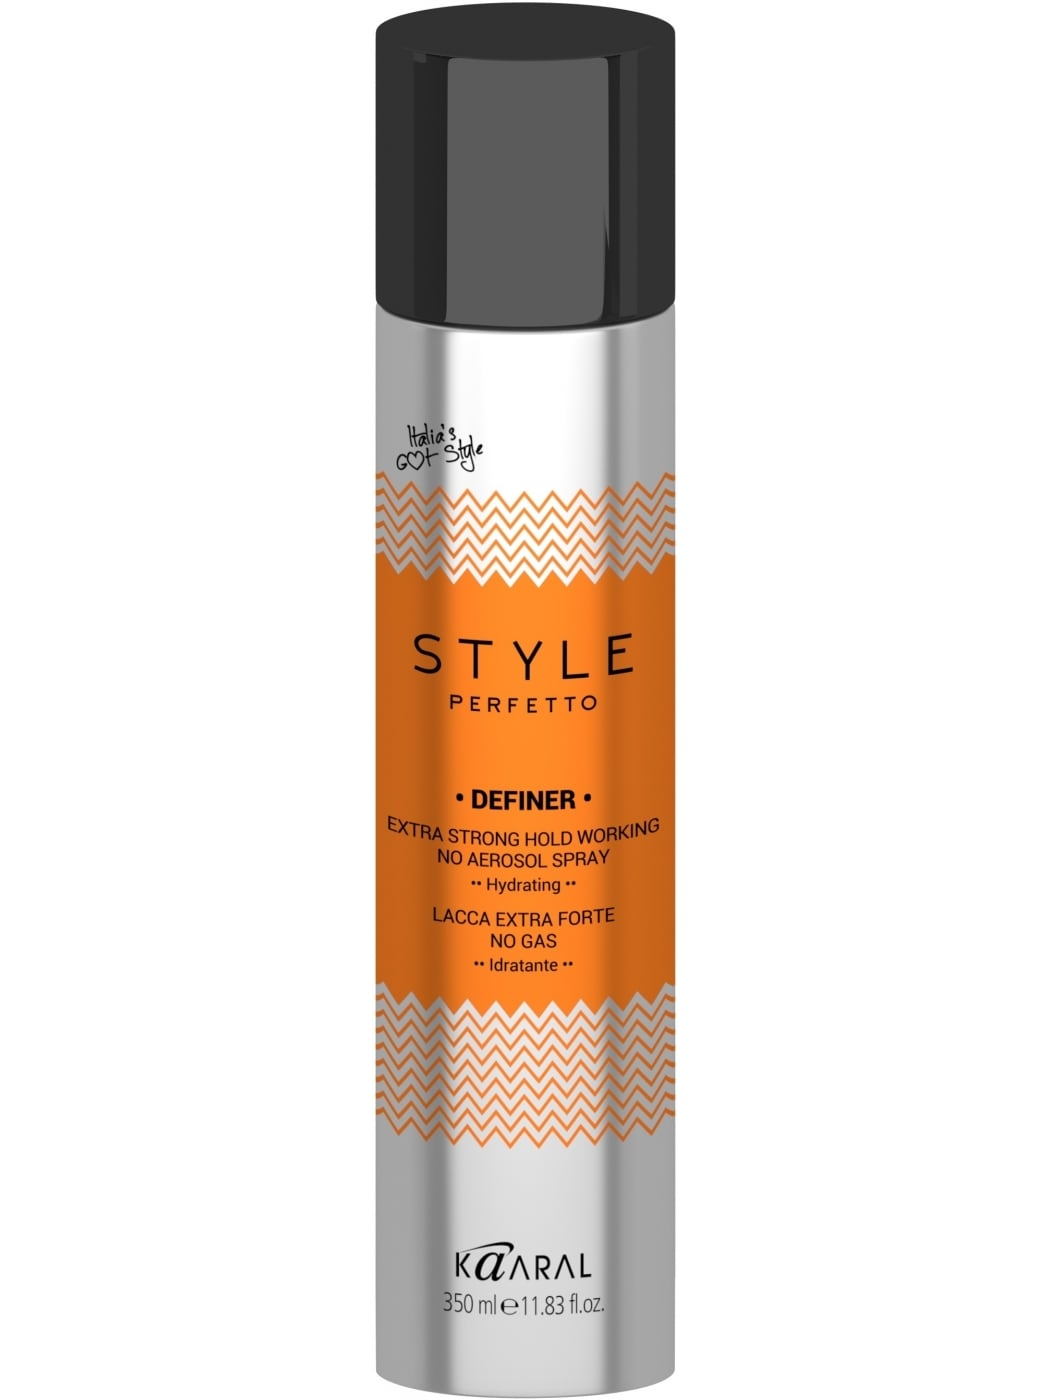 Kaaral Лак без газа экстра фиксации Style Perfetto Definer Extra Strong Hold Working No Aerosol Spray, 350 мл kaaral лак без газа экстра фиксации style perfetto definer extra strong hold working no aerosol spray 350 мл